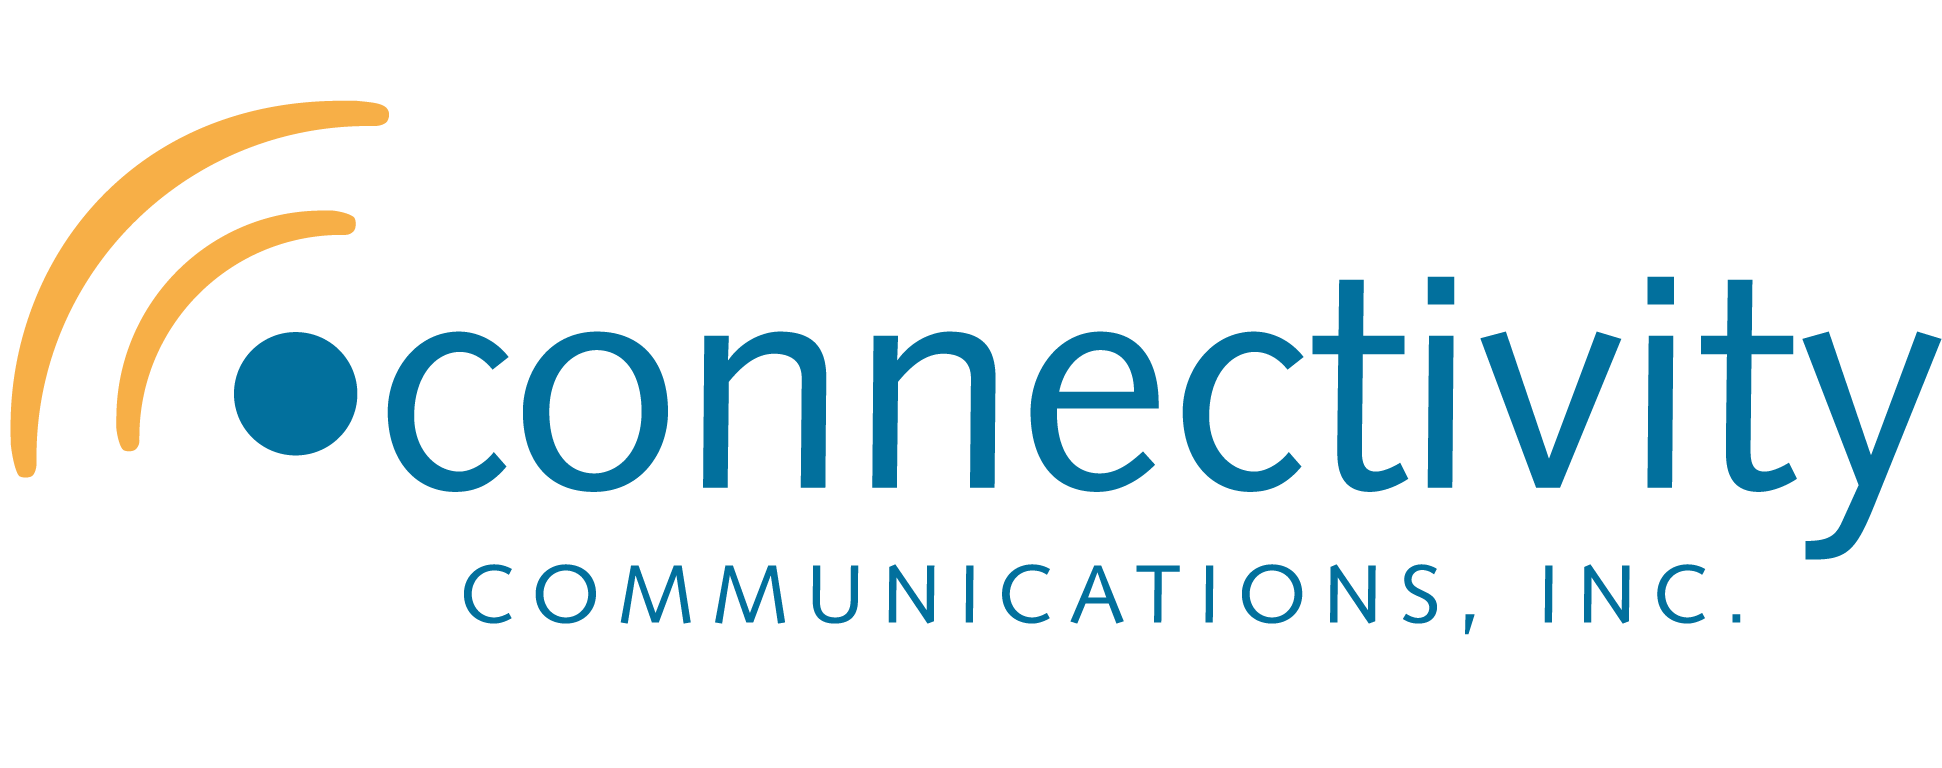 Connectivity logo footer